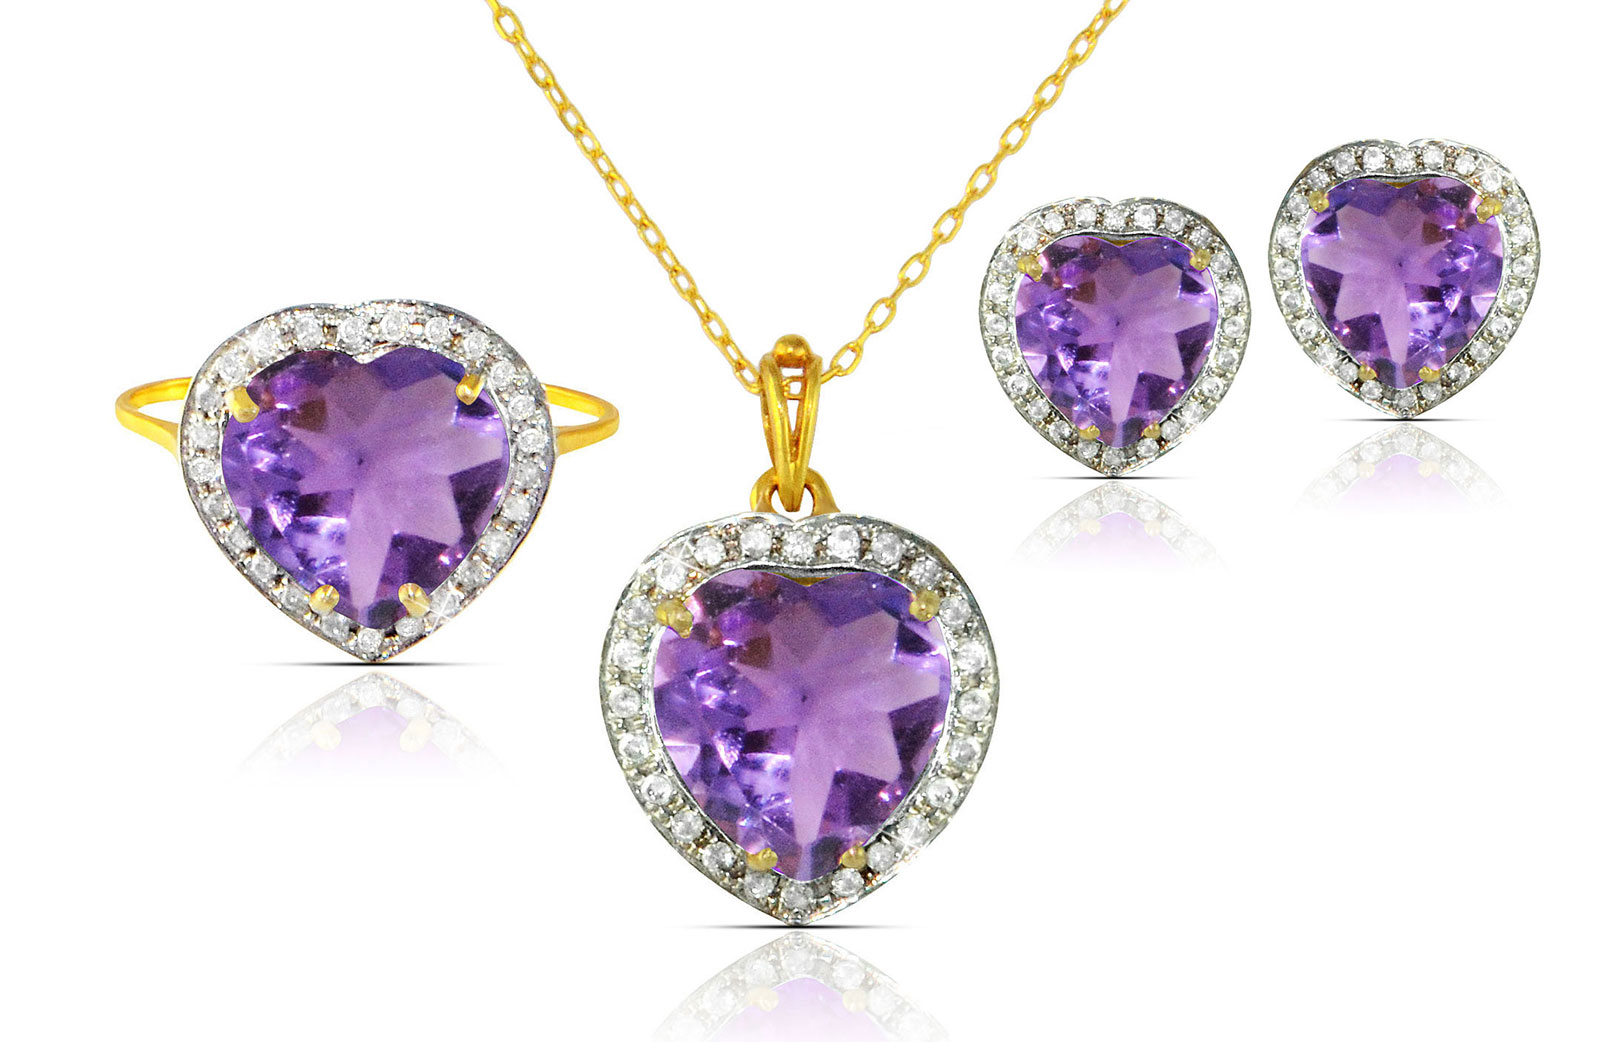 Vera Perla 18k  Gold 10mm Genuine Heart  Cut Amethyst 0.56Ct Genuine Diamonds Jewelry Set